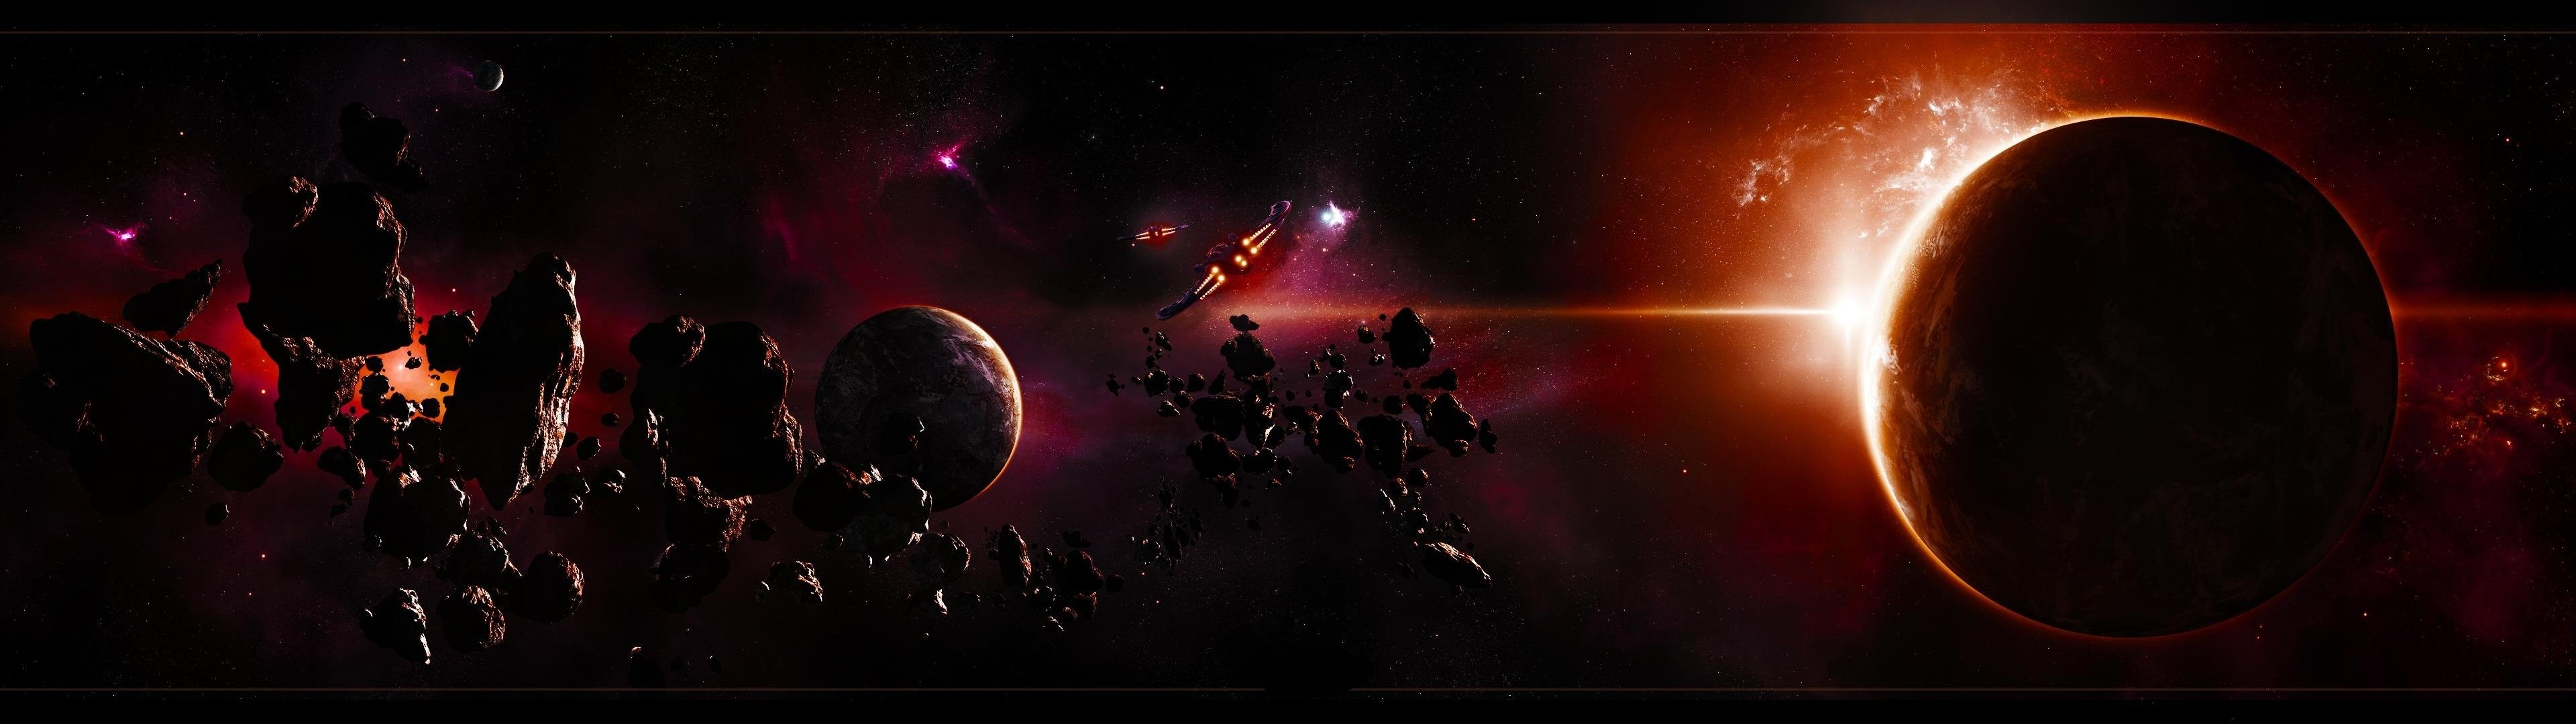 Dual Monitor Wallpaper Space Download Free Cool Full Hd